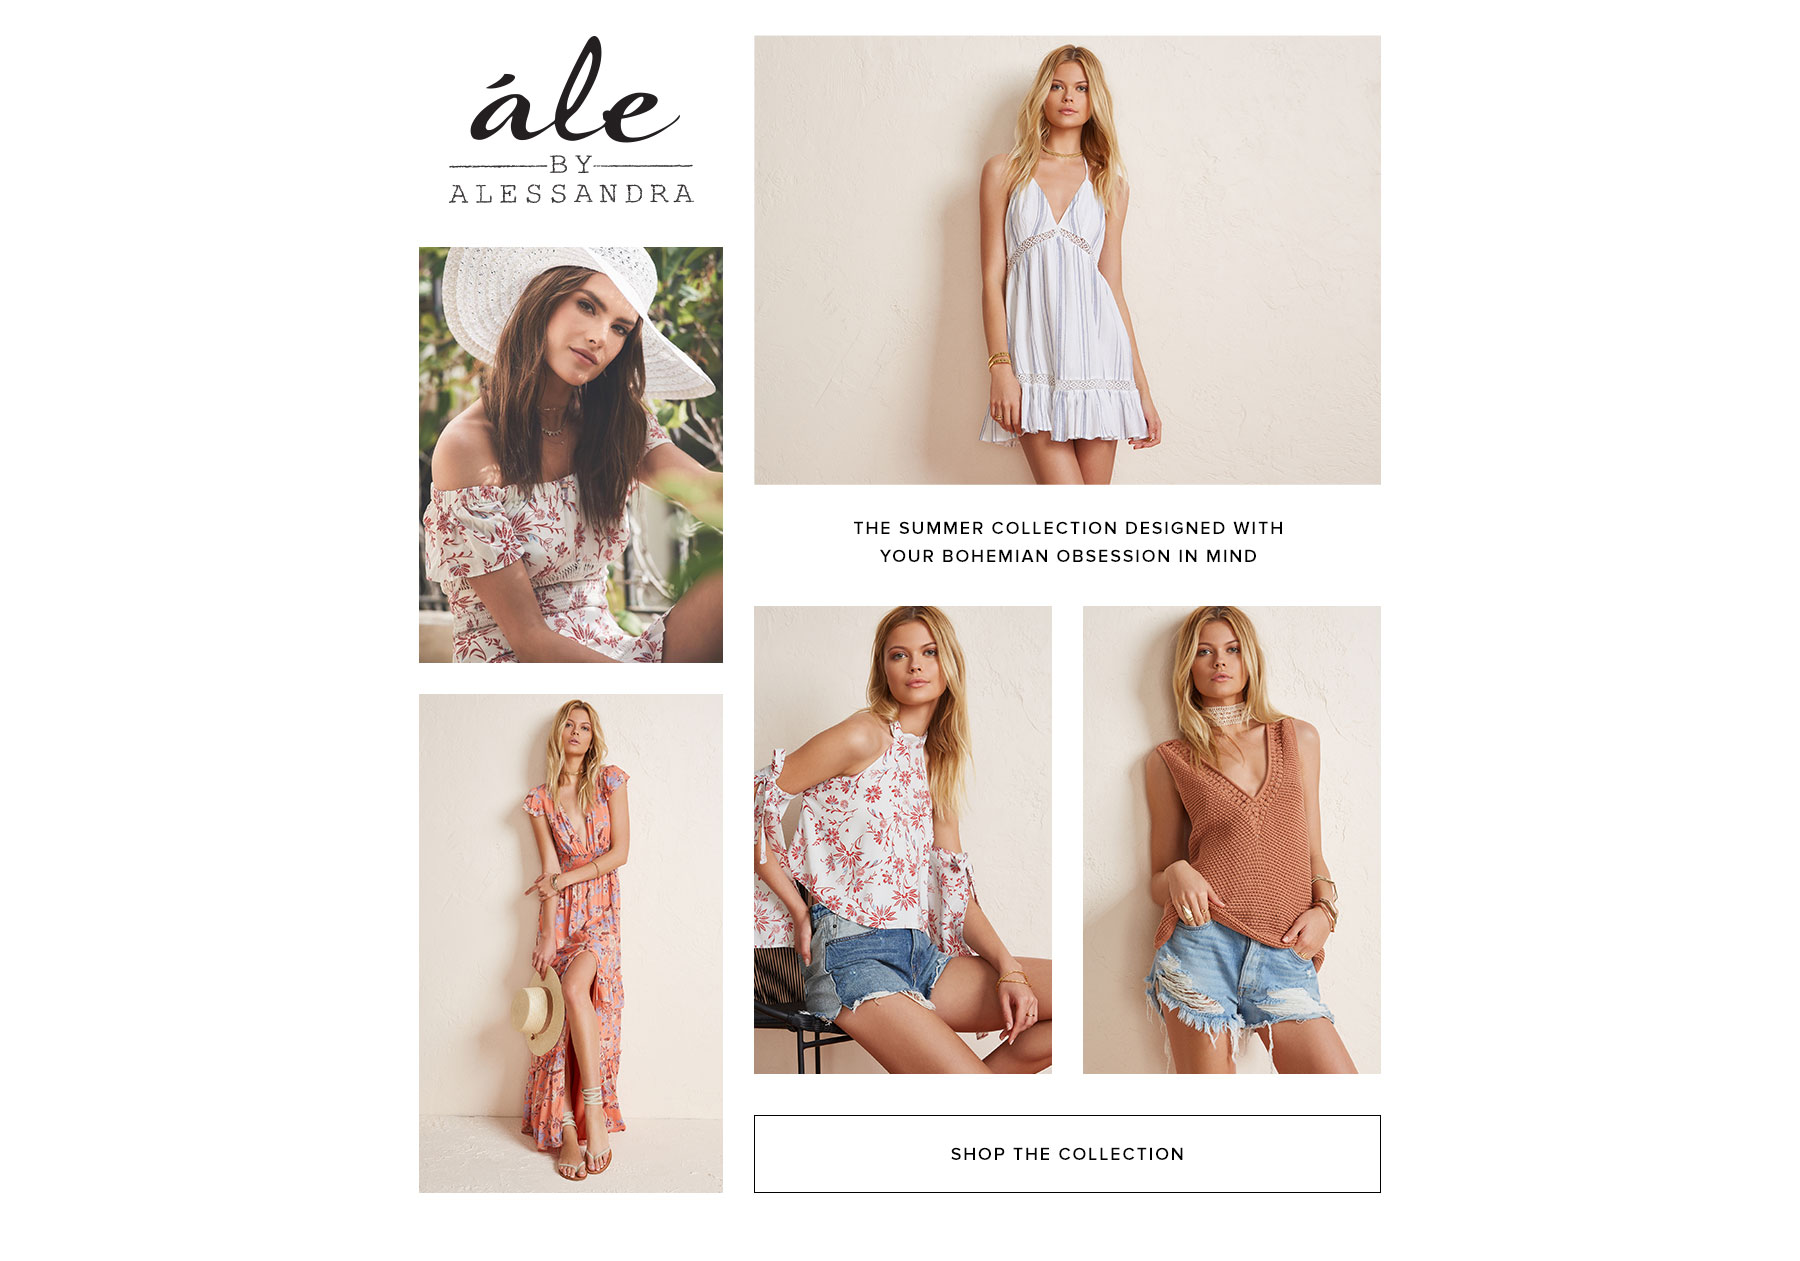 Ále By Alessandra. The summer collection designed with your bohemian obsession in mind. Shop the collection.